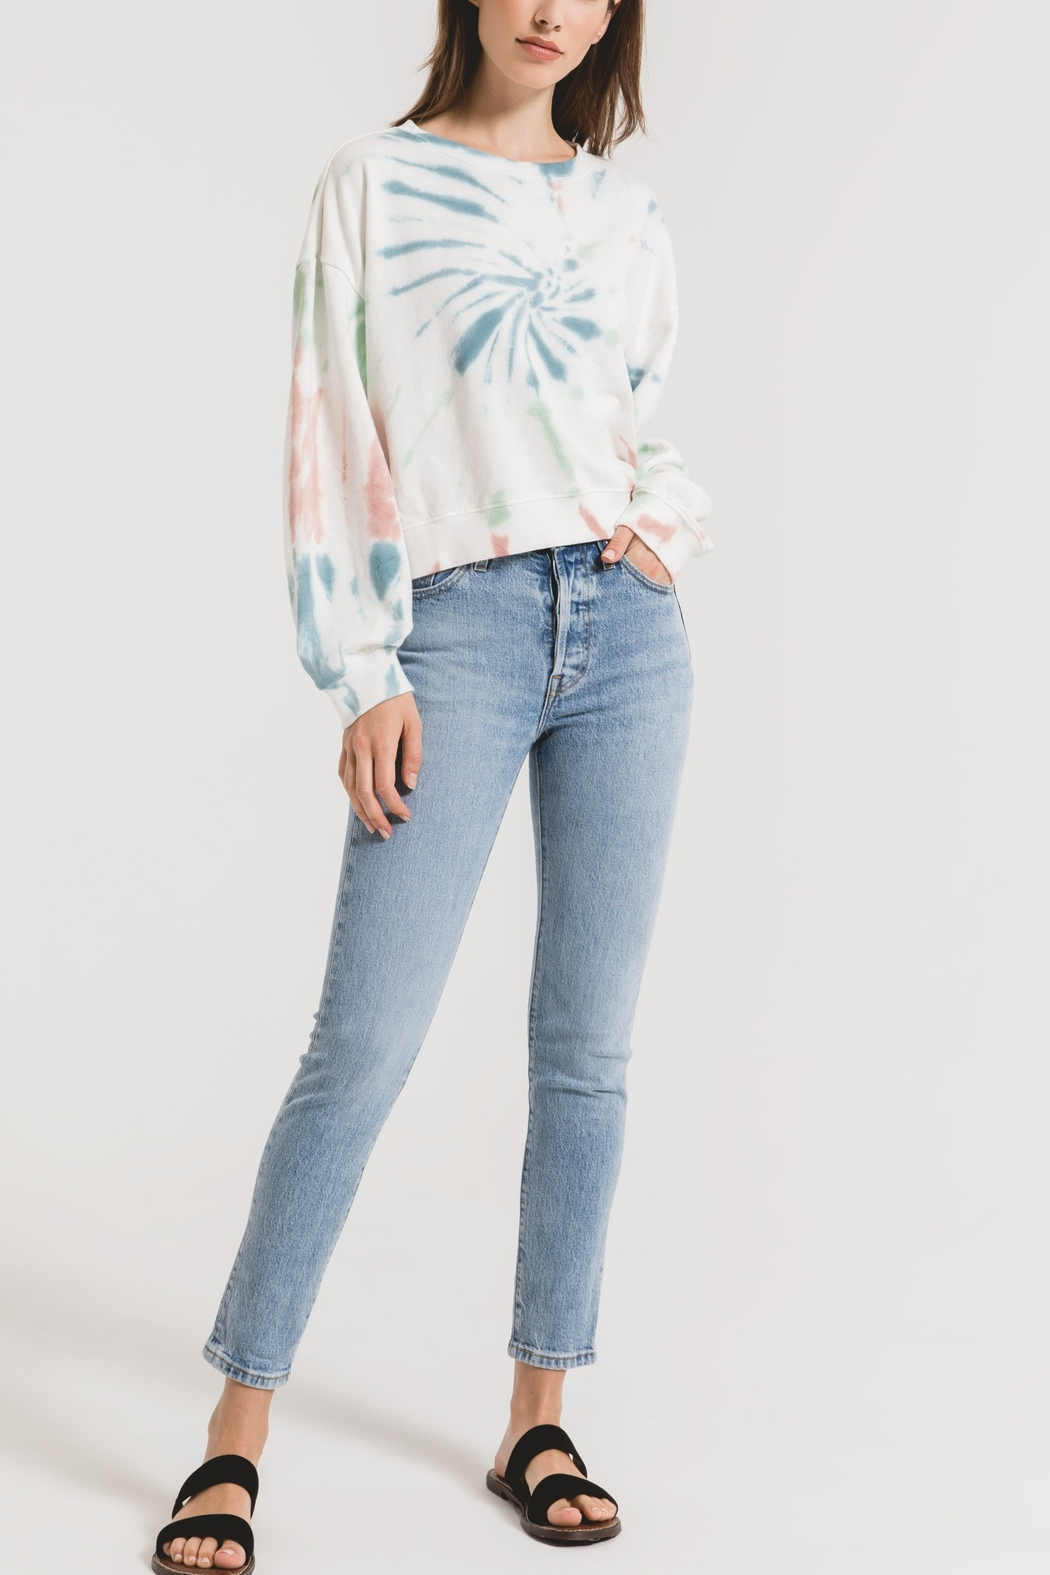 z supply Tie Dye Pullover Sweatshirt - Front Cropped Image